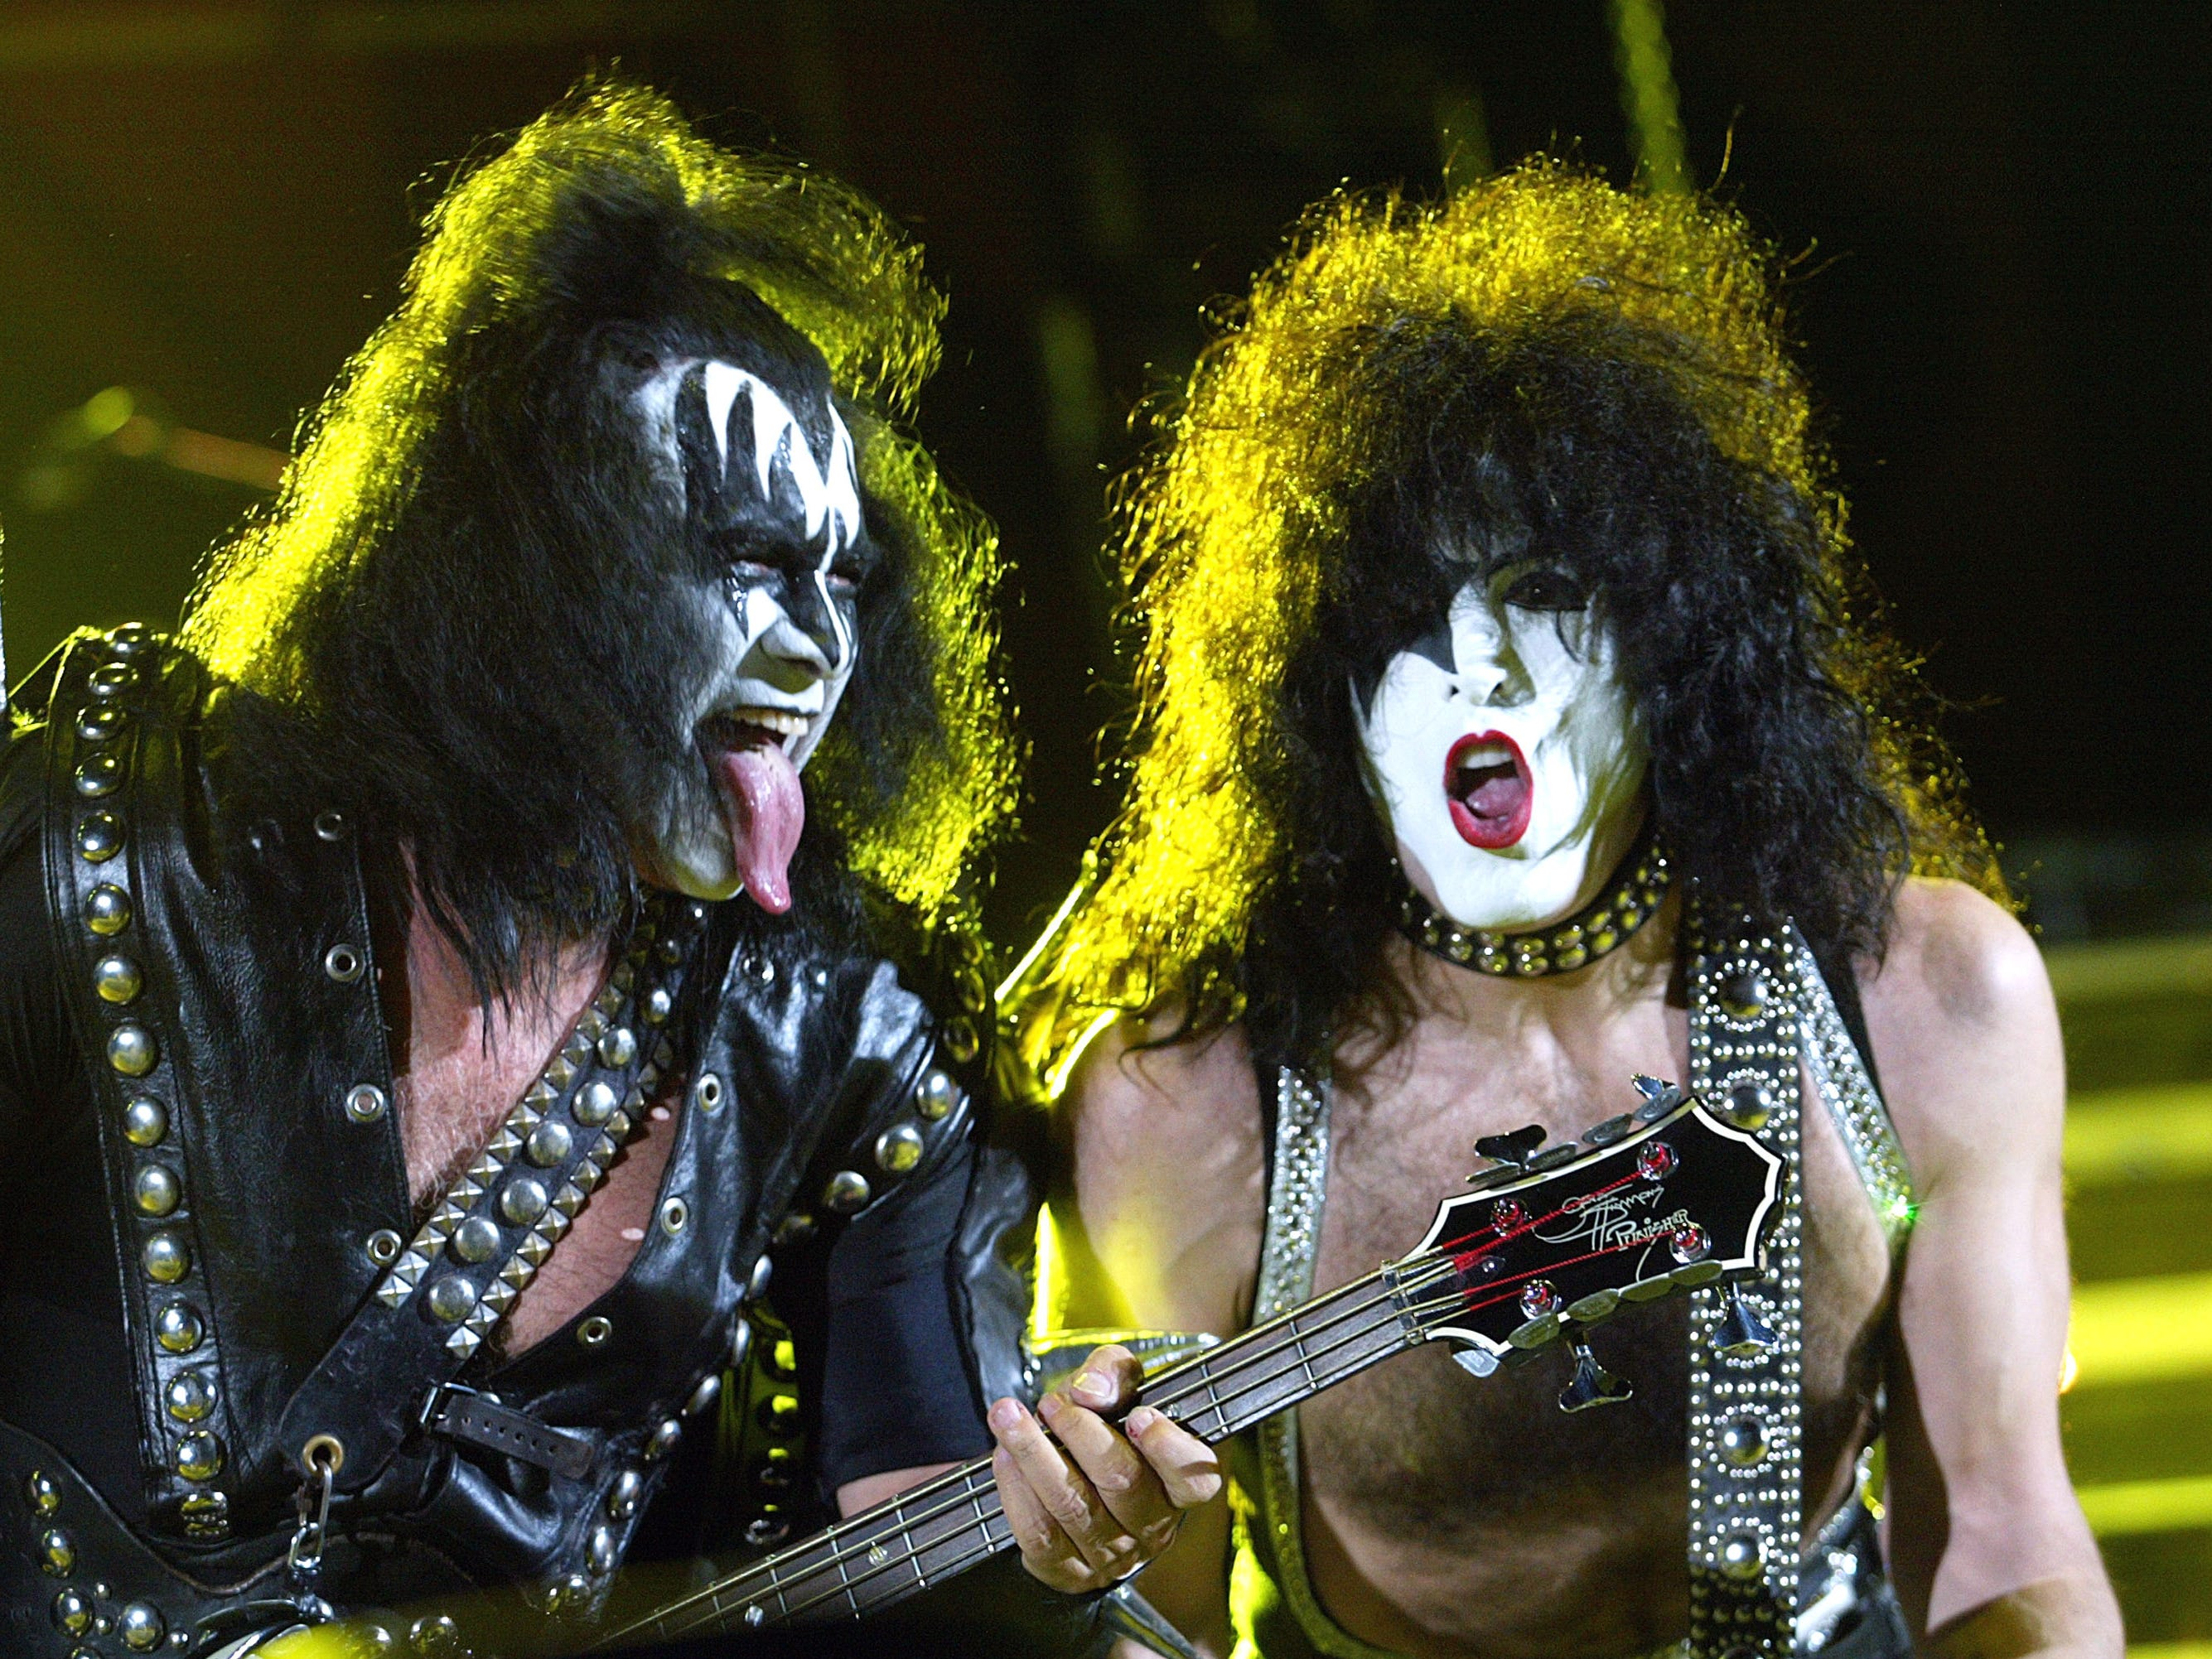 """PASADENA, CA - MAY 17:  KISS, with Gene Simmons (L) and Paul Stanley,  performs at 102.7 KIIS-FM's 6th Annual """"Wango Tango - The Ultimate Reality Show"""" at the Rose Bowl on May 17, 2003 in Pasadena, California. (Photo by Kevin Winter/Getty Images)"""